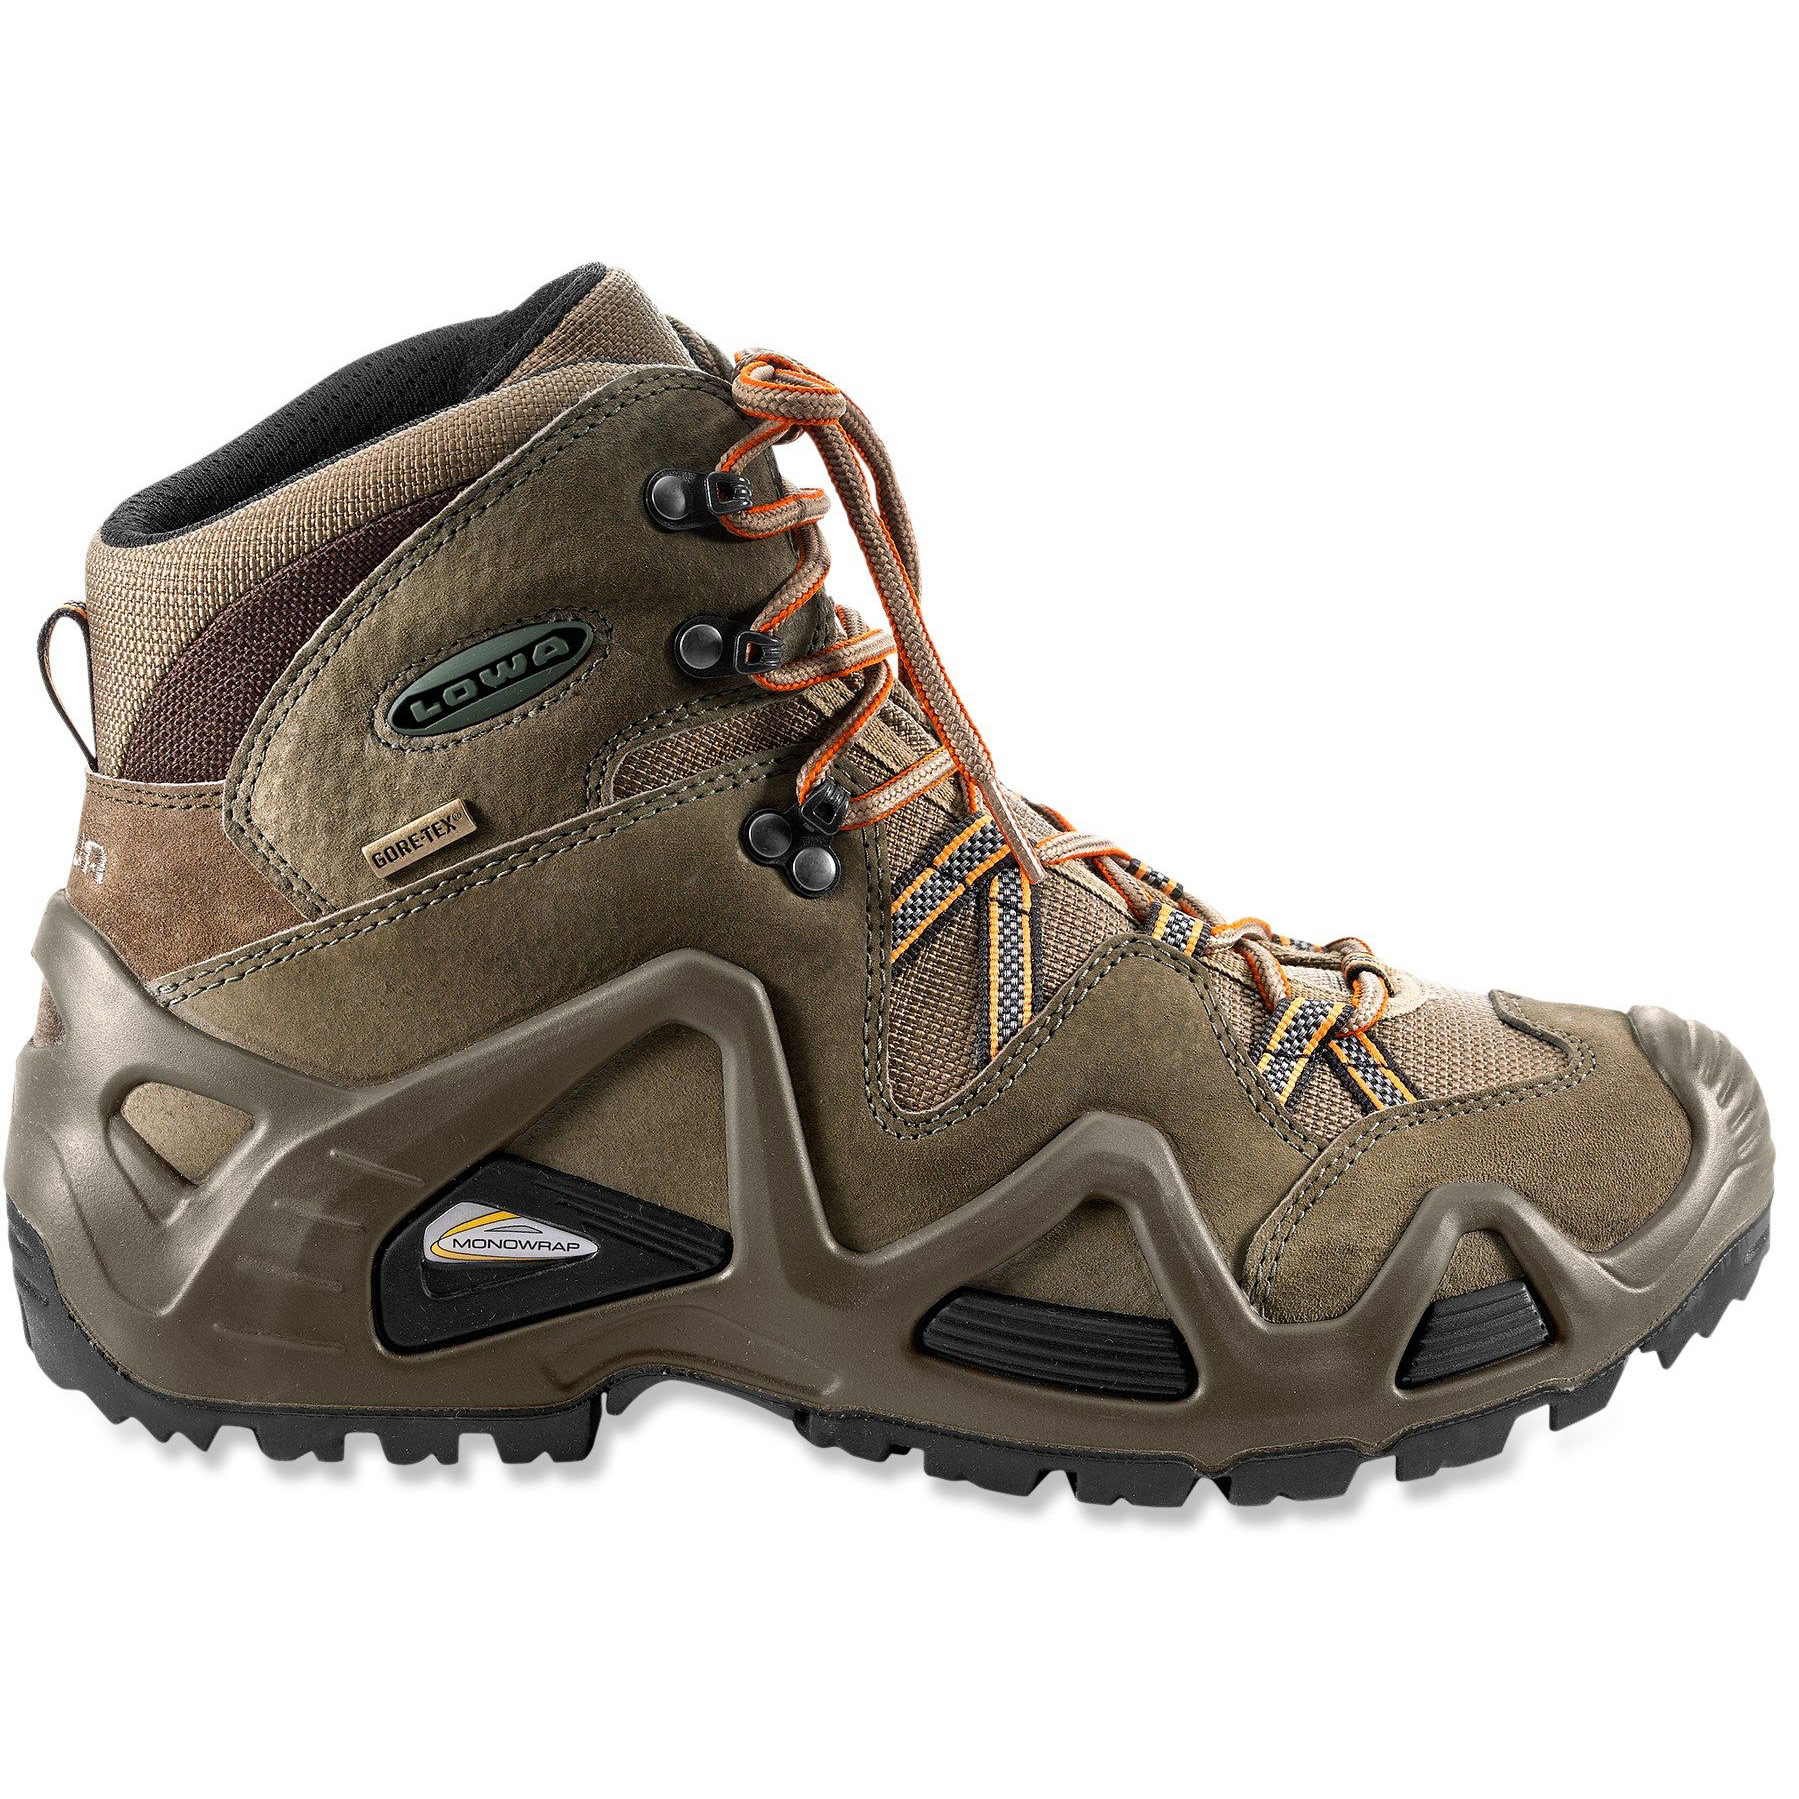 Best Tactical Hiking Boots 2021